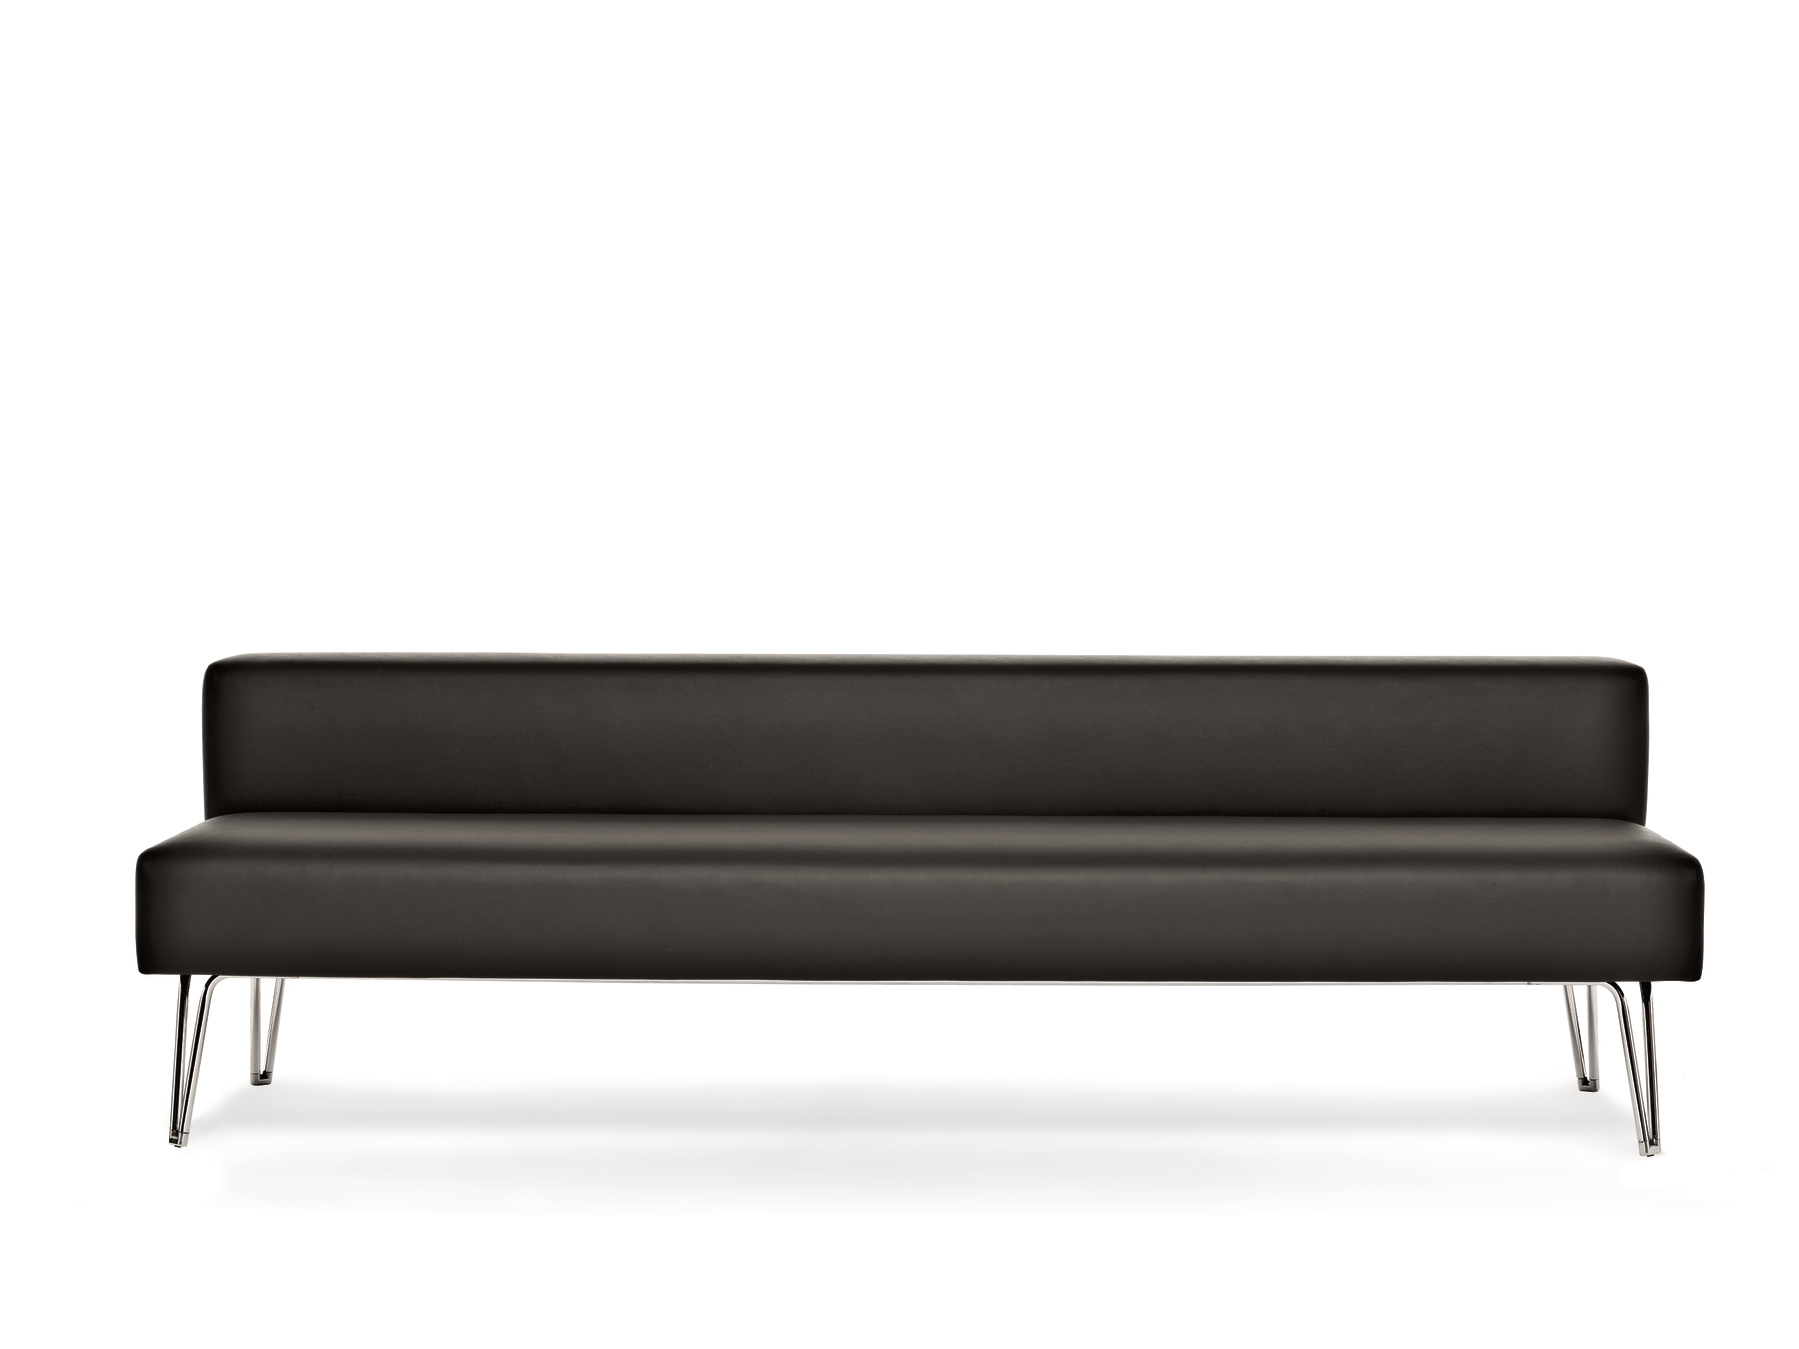 Lobby Bench With Back Lobby Collection By Emmegi Design R S